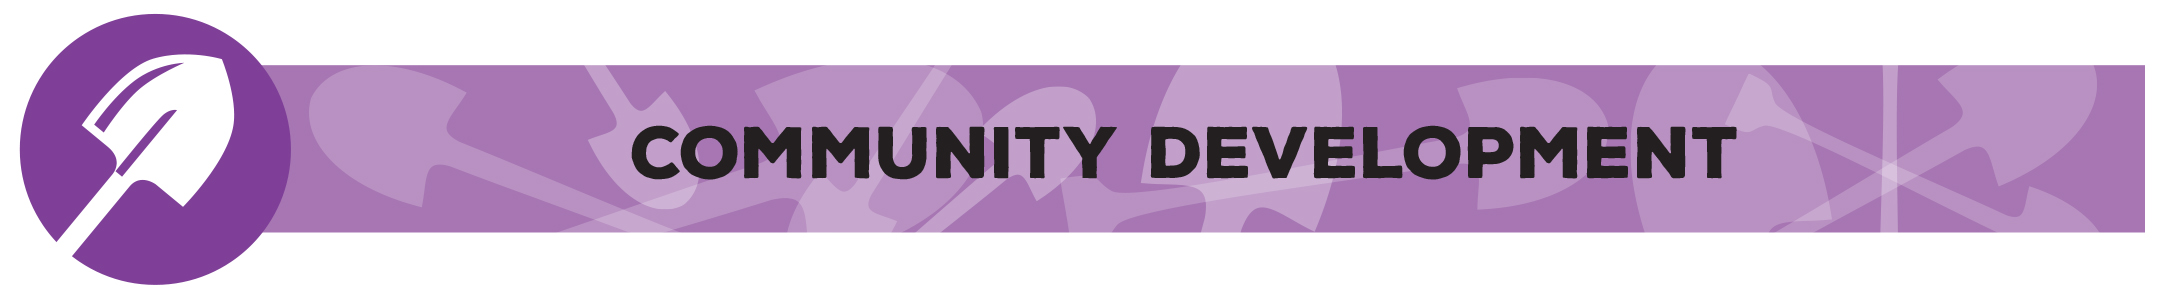 Community-header-6in-PRINT